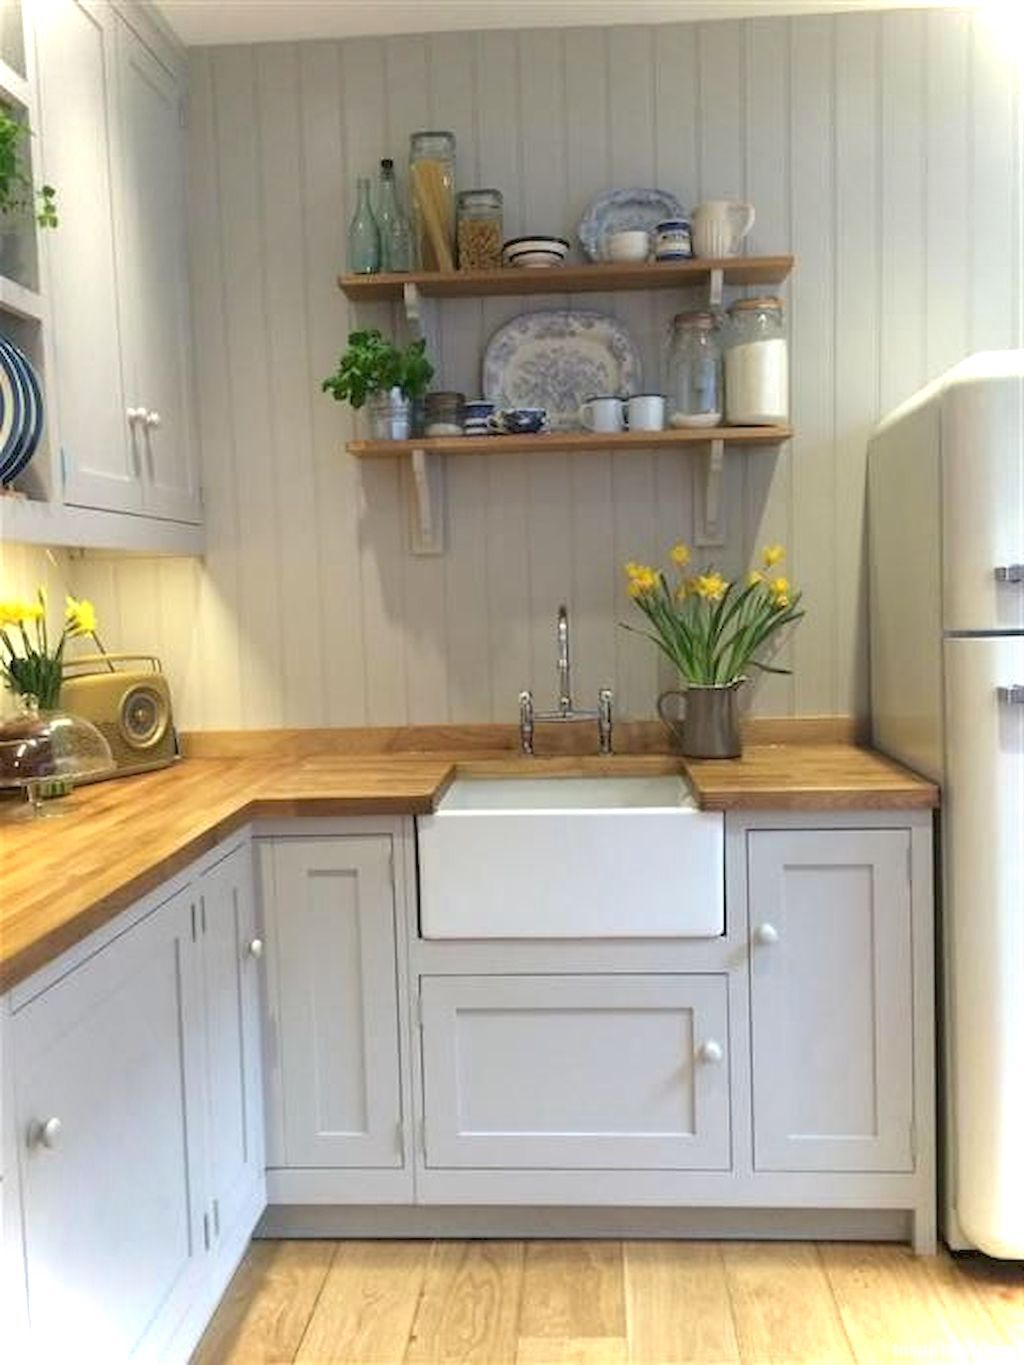 Superieur Awesome 55 Genius Small Cottage Kitchen Design Ideas Https://roomaniac.com/